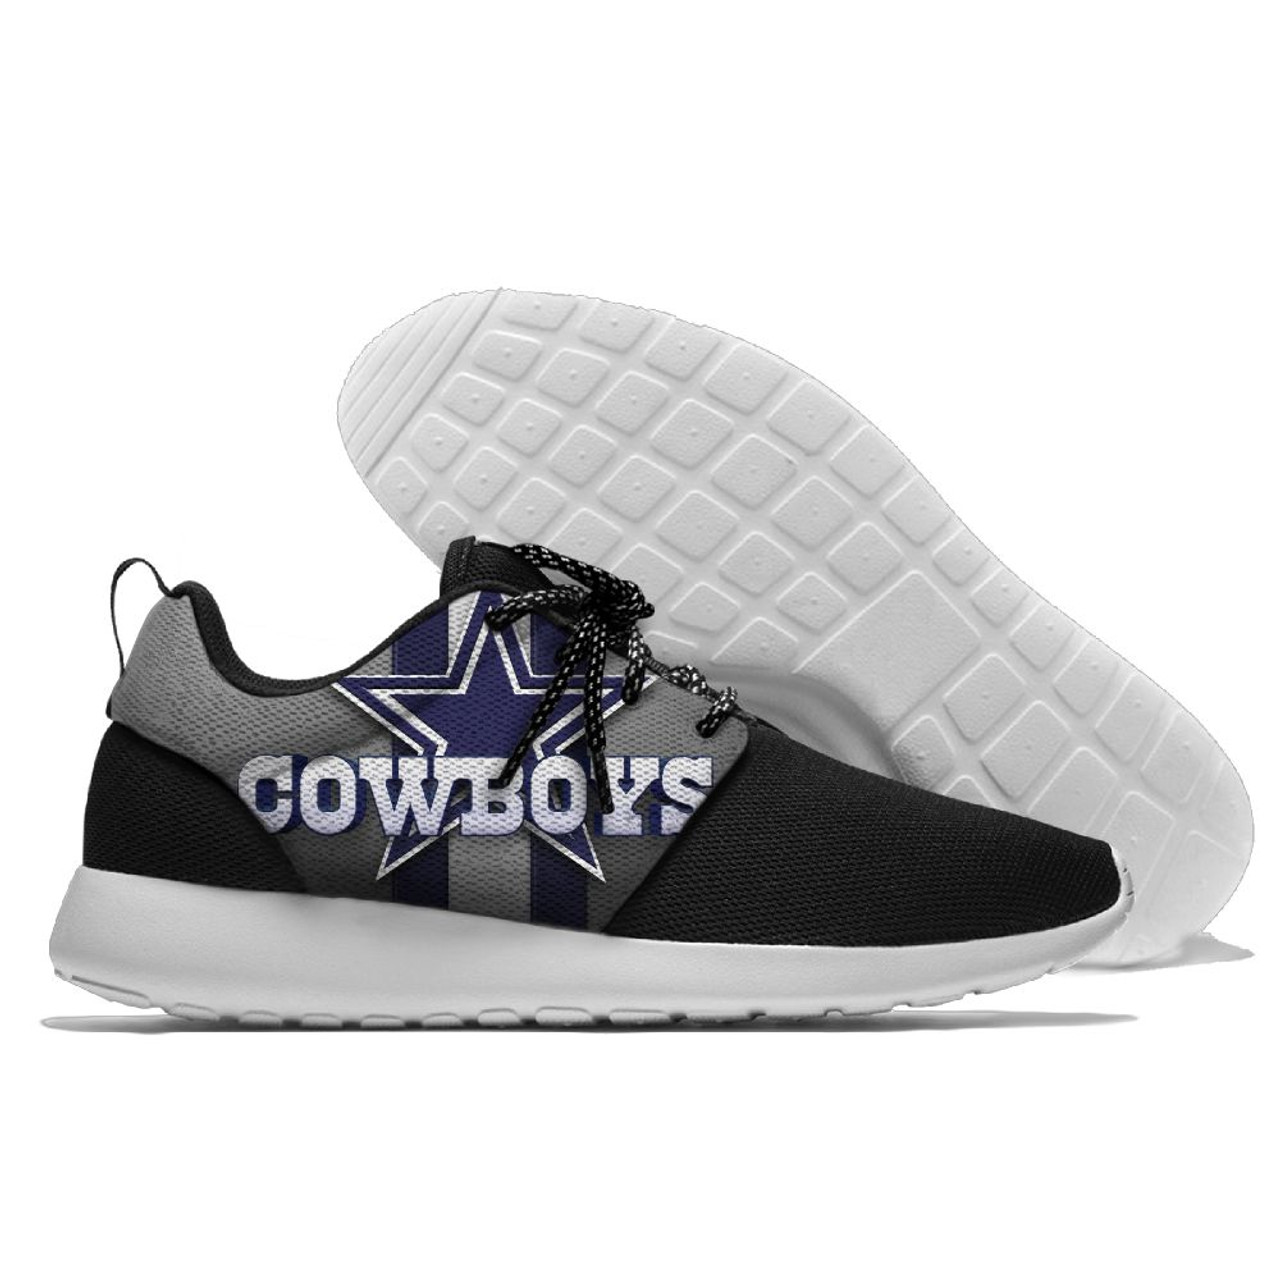 16c57bd0 **(NEW-OFFICIALLY-LICENSED-N.F.L.DALLAS-COWBOYS-RUNNING-SHOES,MENS-OR-WOMENS-ROSHE-STYLE,LIGHT-WEIGHT-SPORT-RUNNING-SHOES,WITH-OFFICIAL-COWBOYS-TEAM-C...